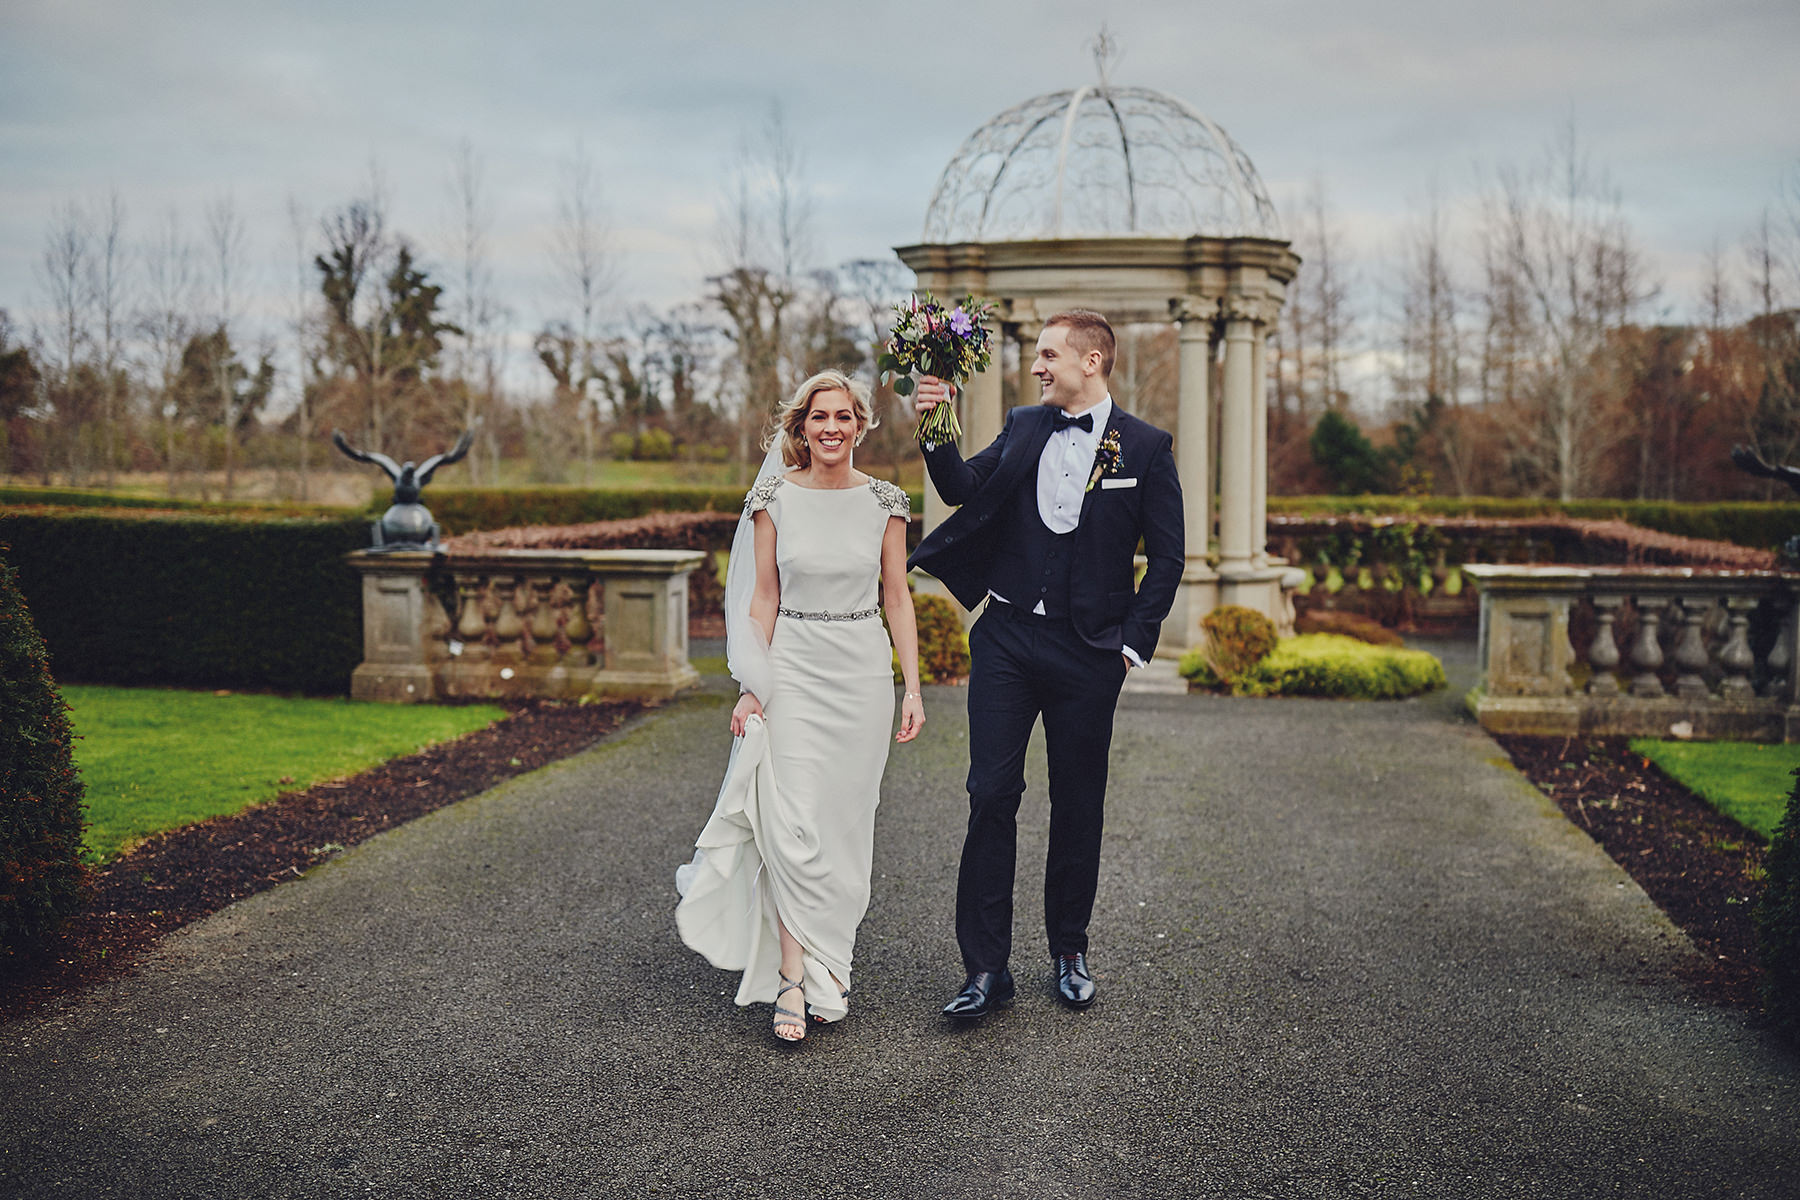 Perfcet Wedding Venue Dublin Palmerstown Estate035 - Perfect Wedding Venue close to Dublin?